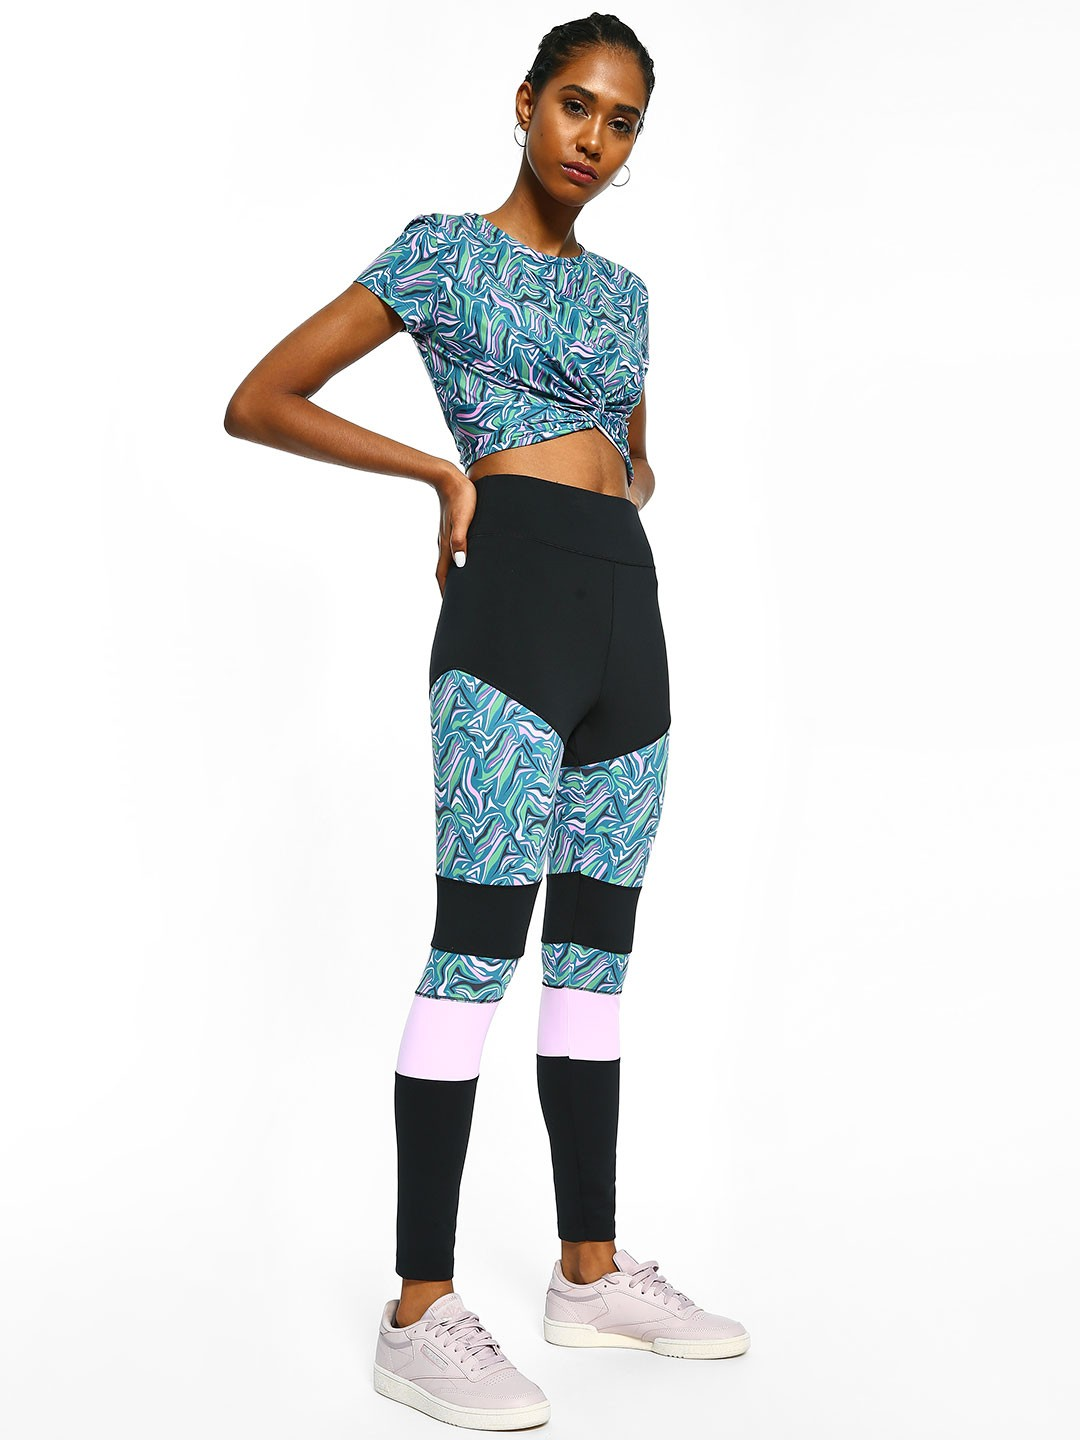 K ACTIVE Multi KOOVS Abstract Print Cut And Sew Leggings 1